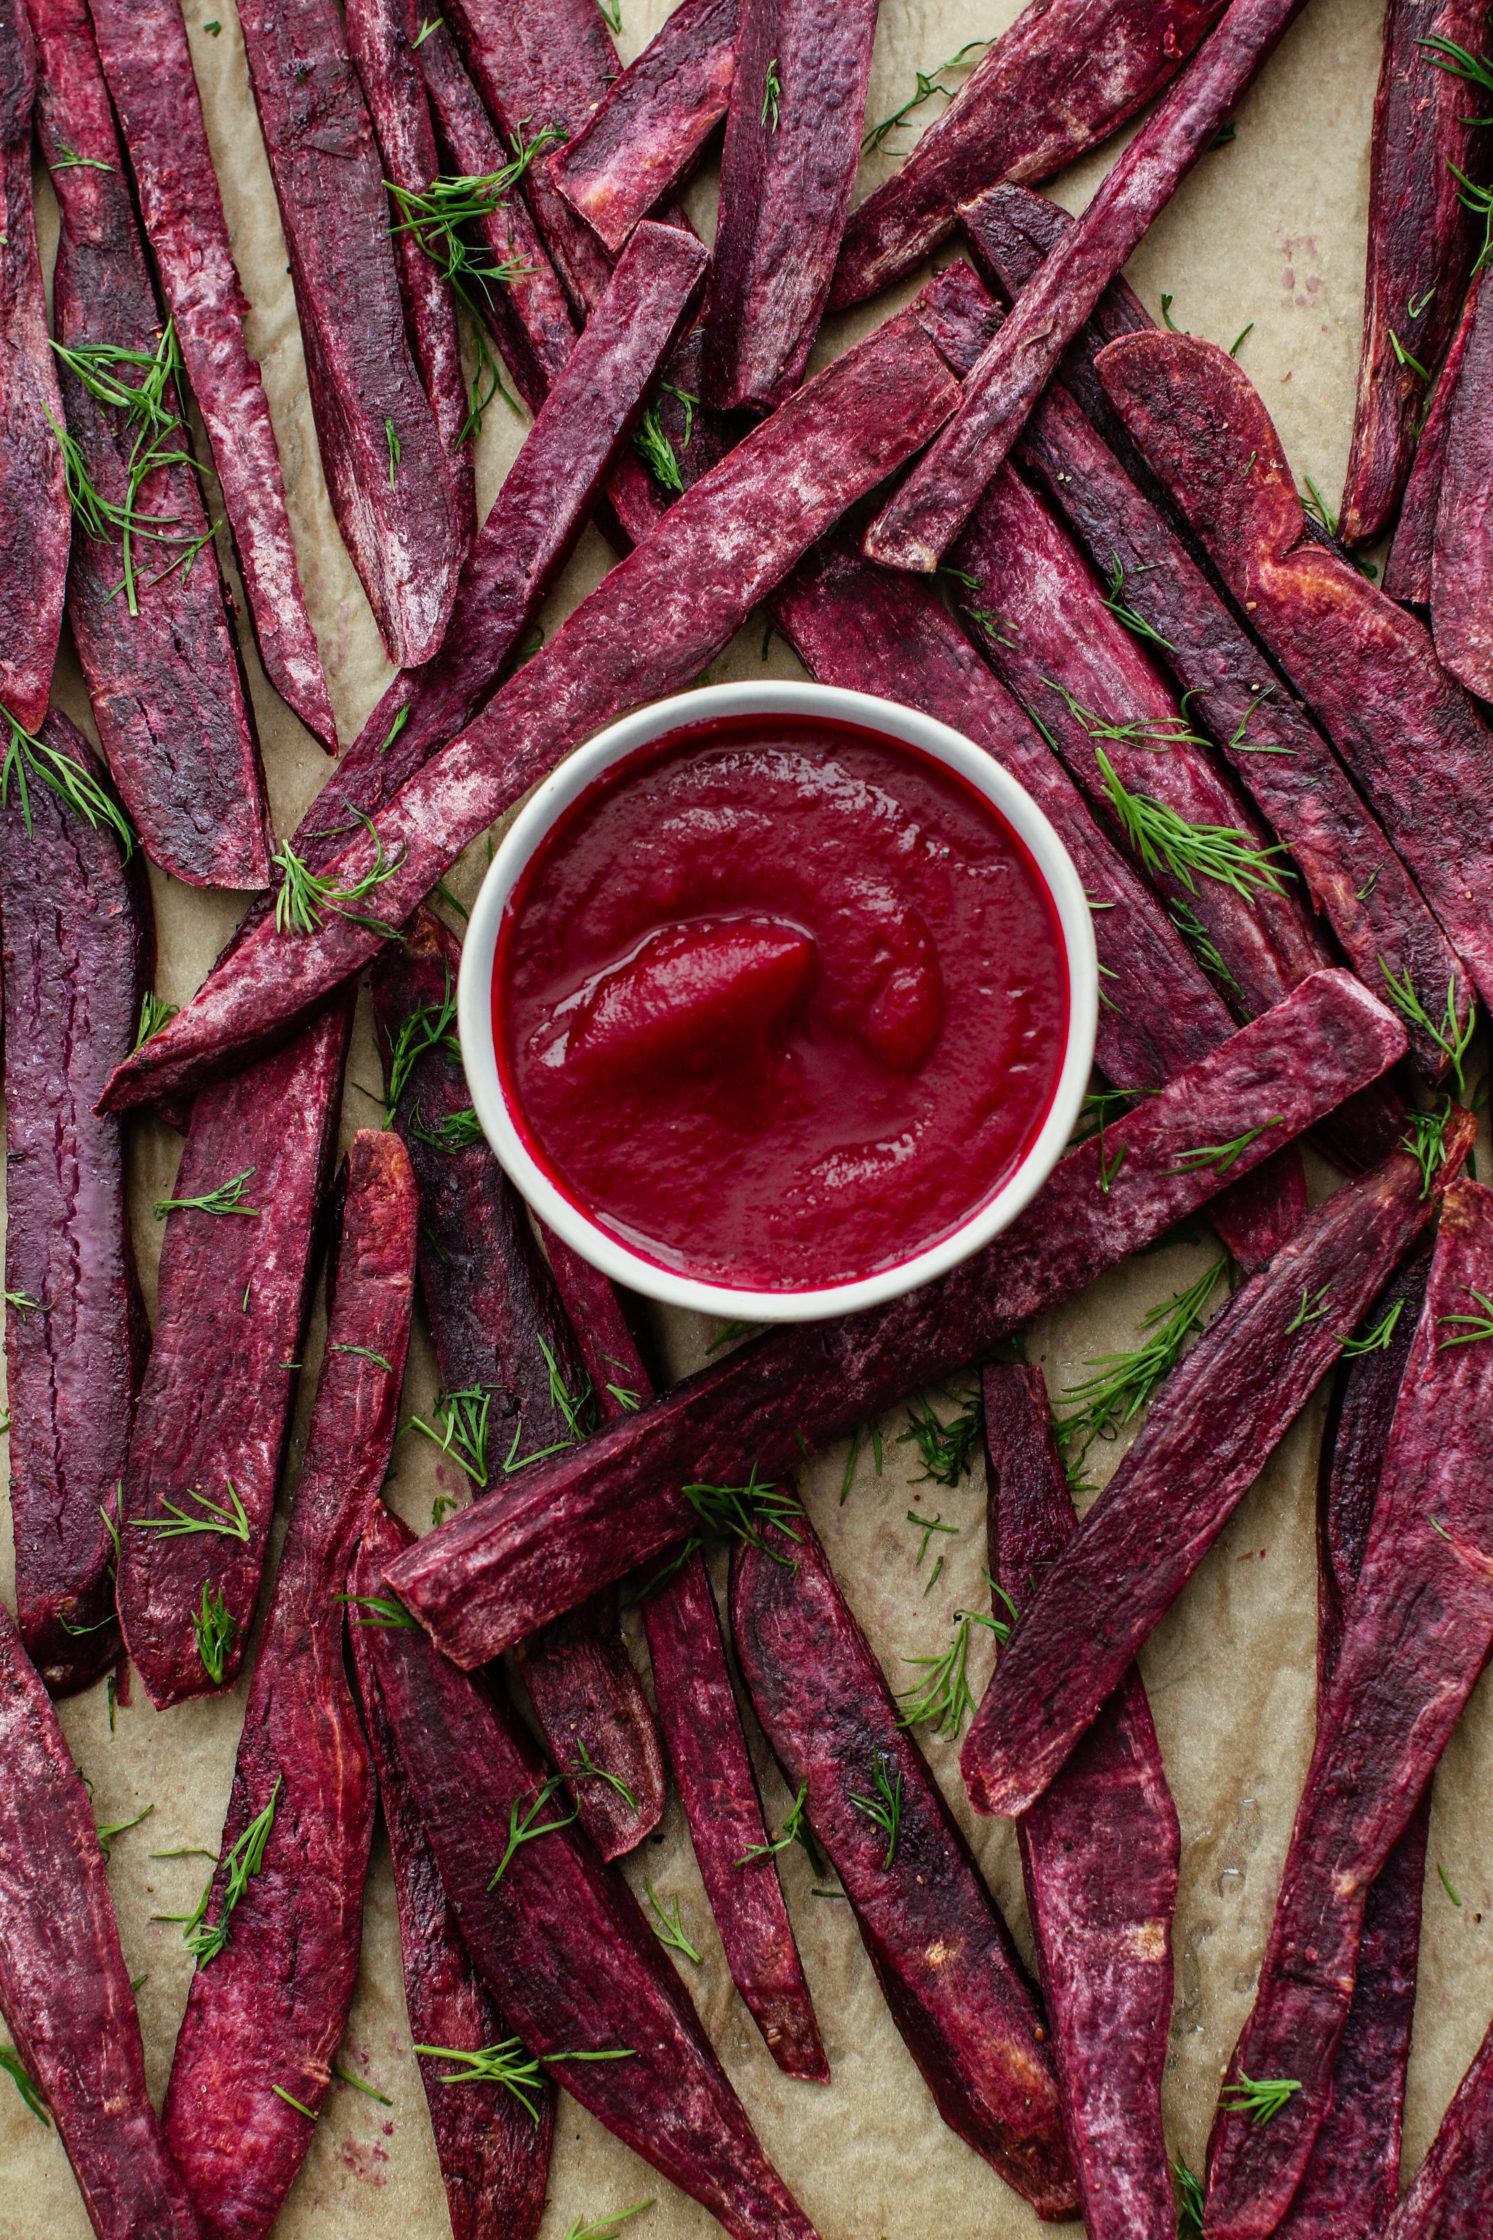 Oil-Free Purple Sweet Potato Fries with Beet Ketchup